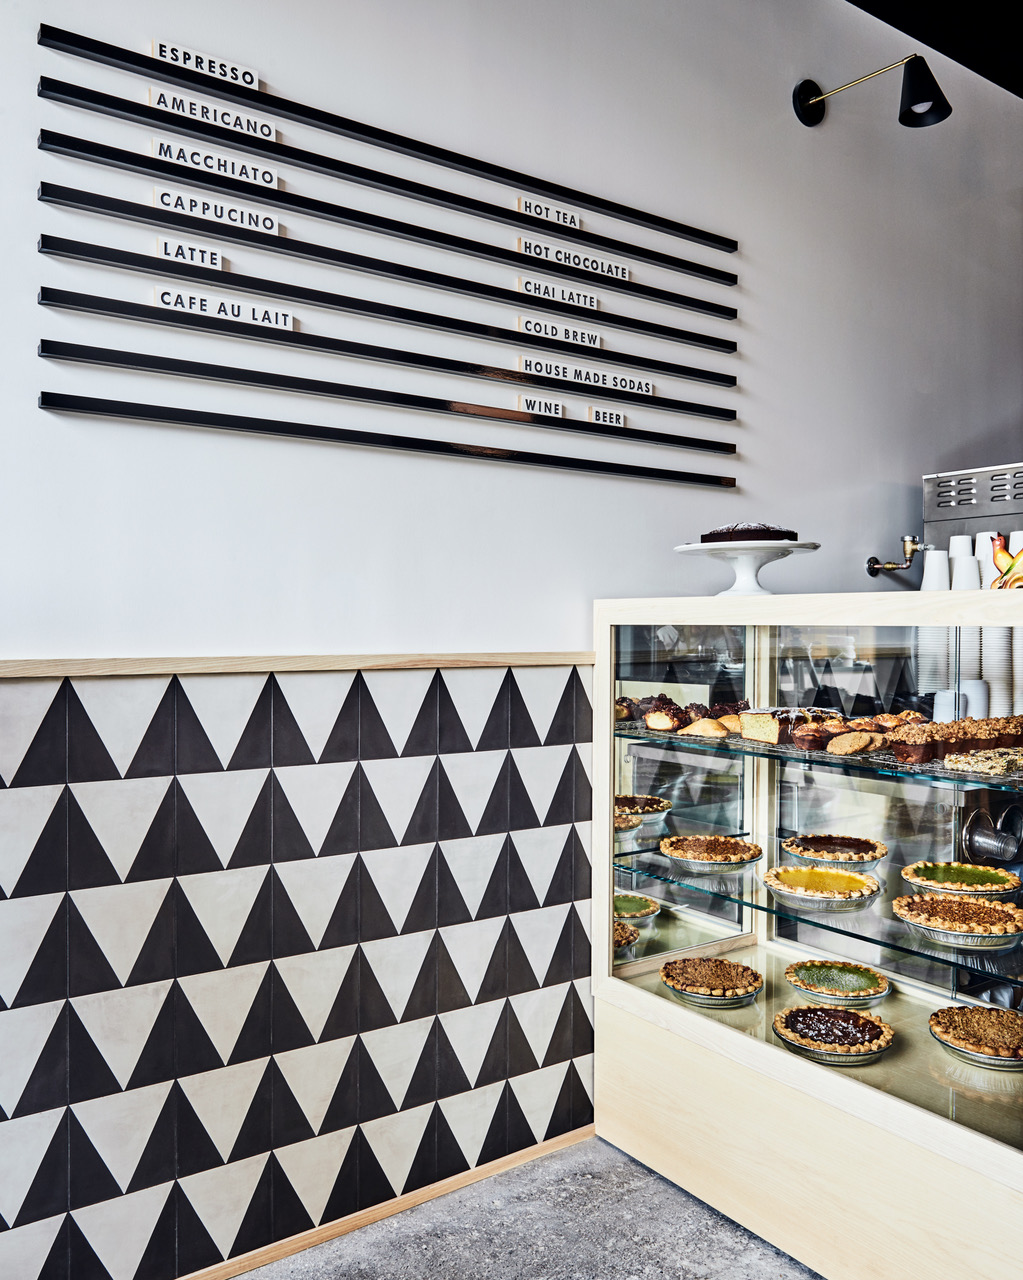 VISIT OUR PIE COUNTER + BAR!